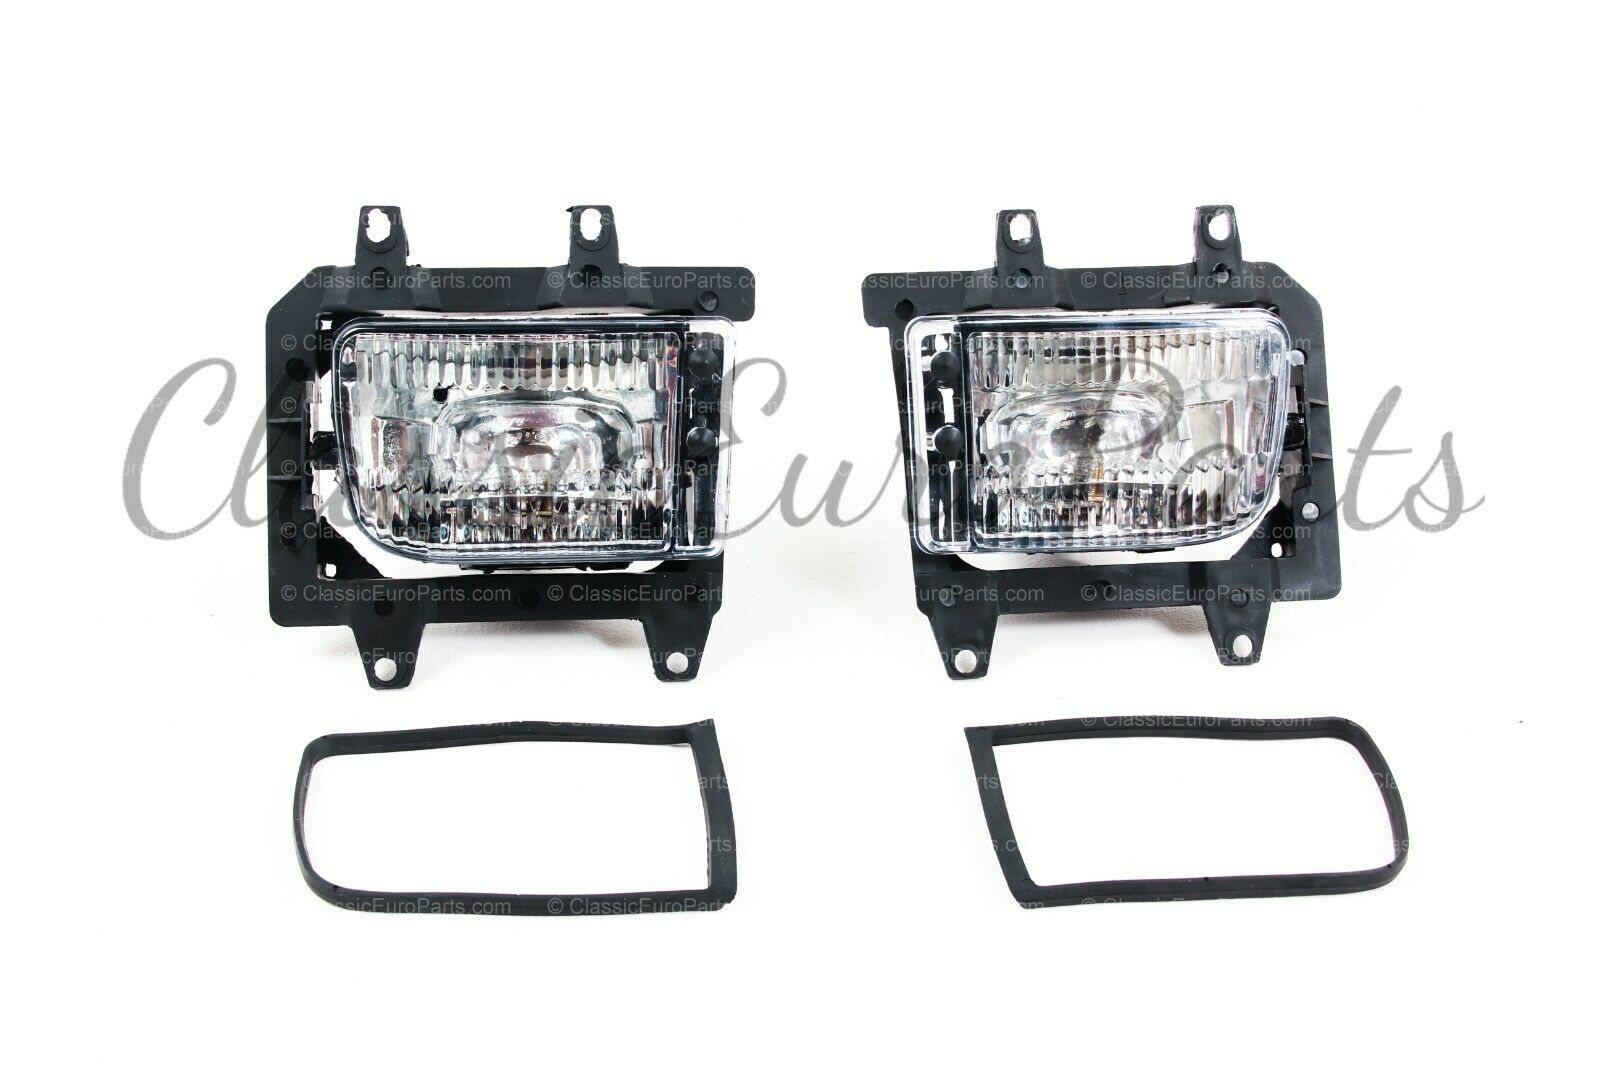 Fog lights with brackets for late model E30 and Mtech 2